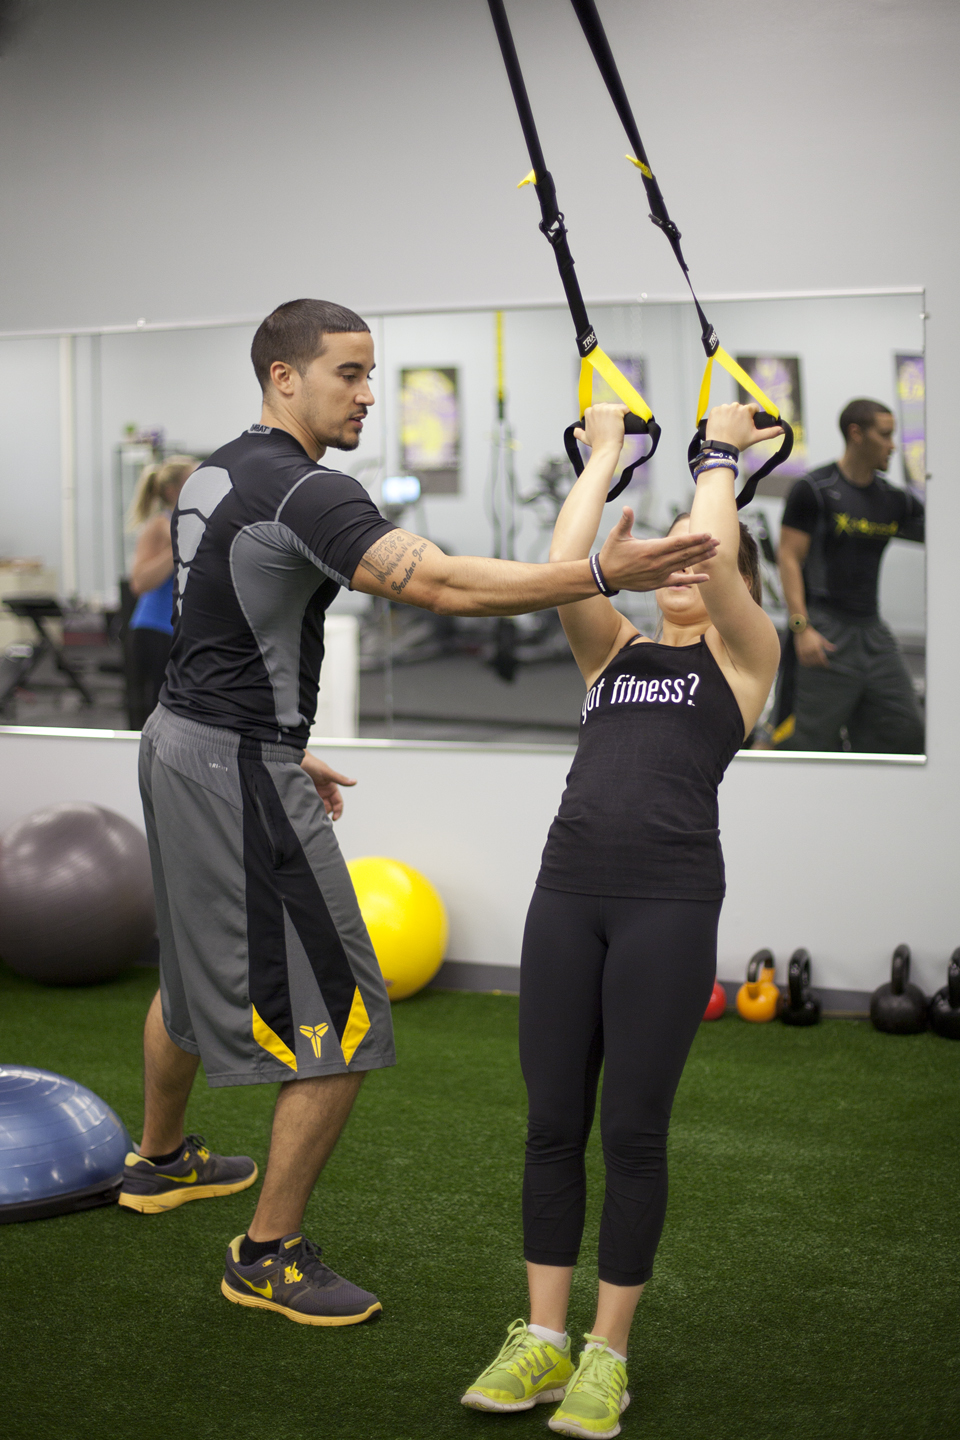 TRX instruction